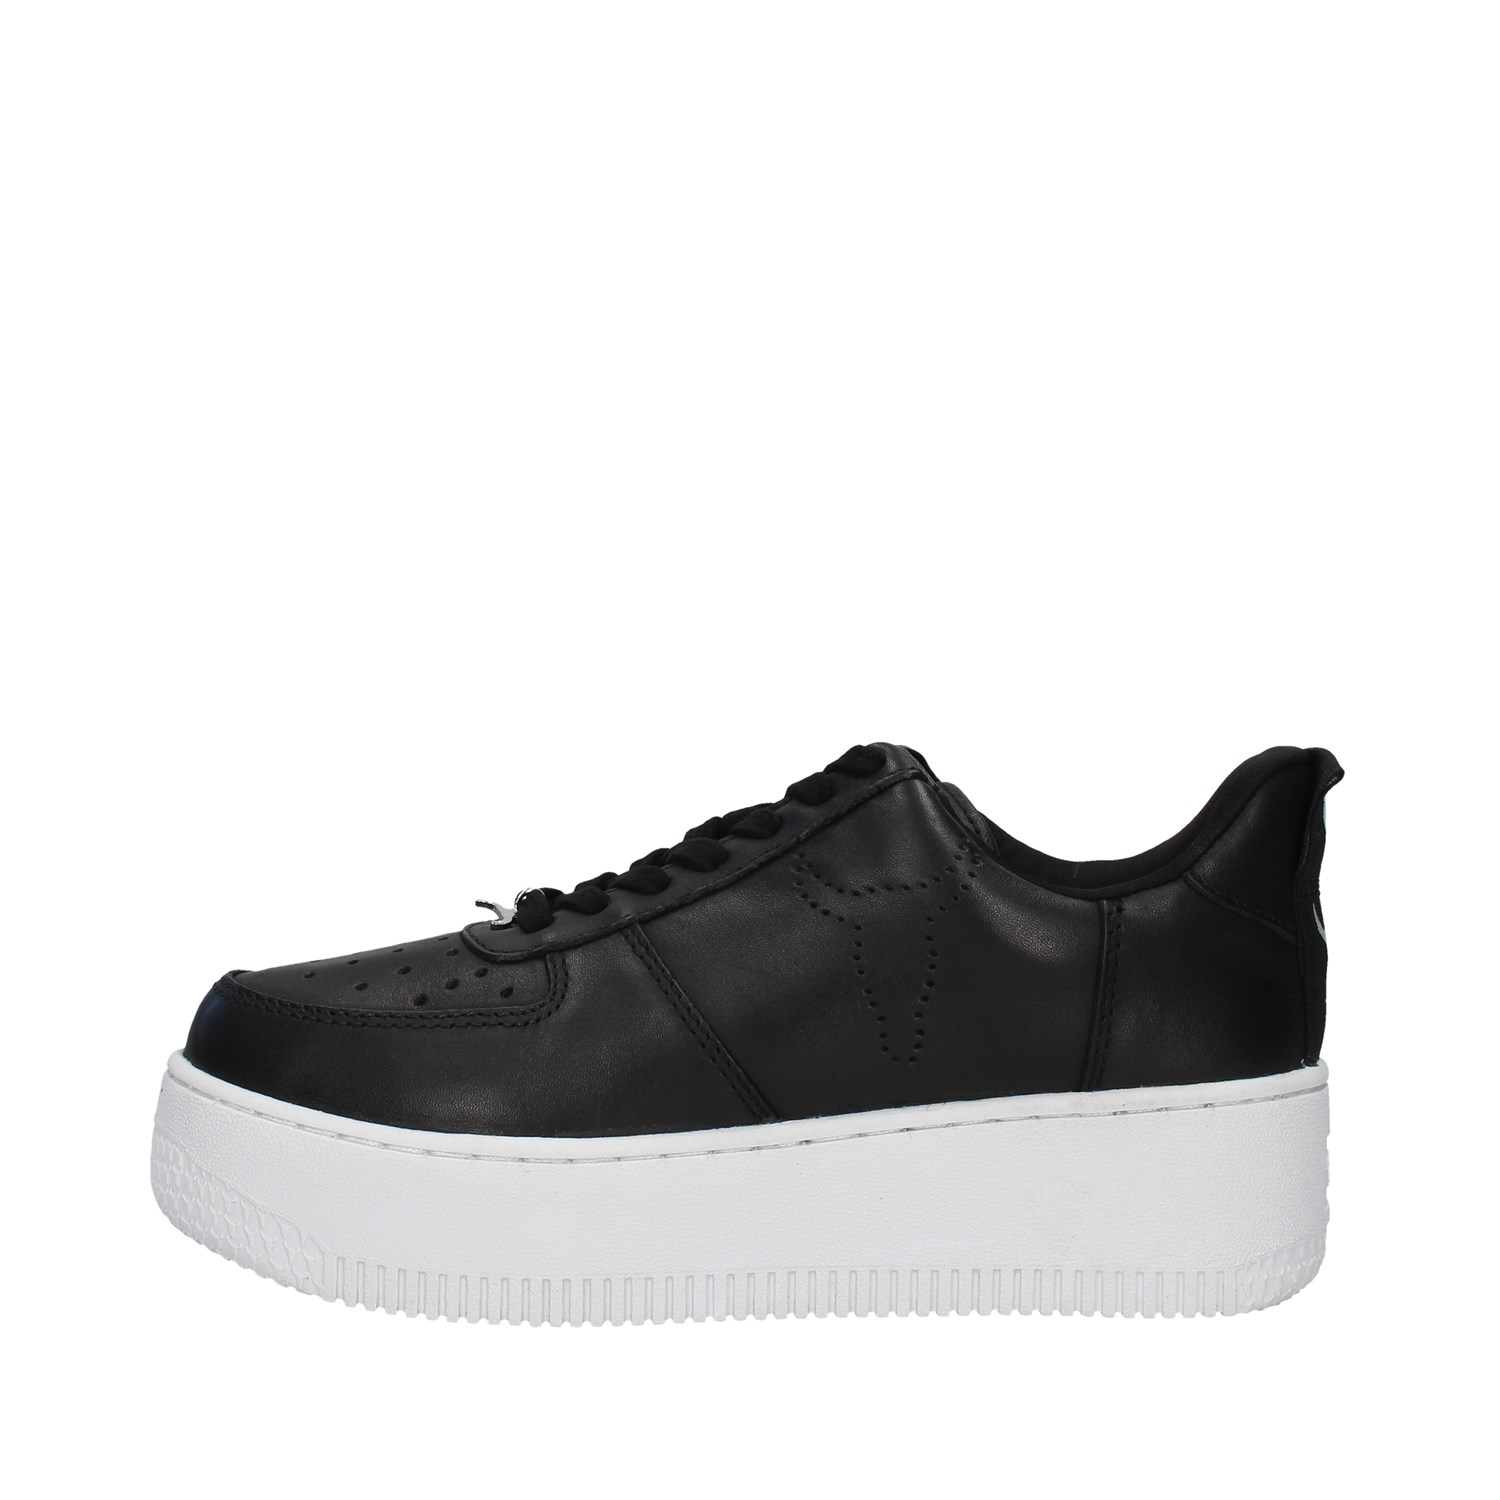 Windsor Smith Shoes Woman low BLACK WSPRACERR